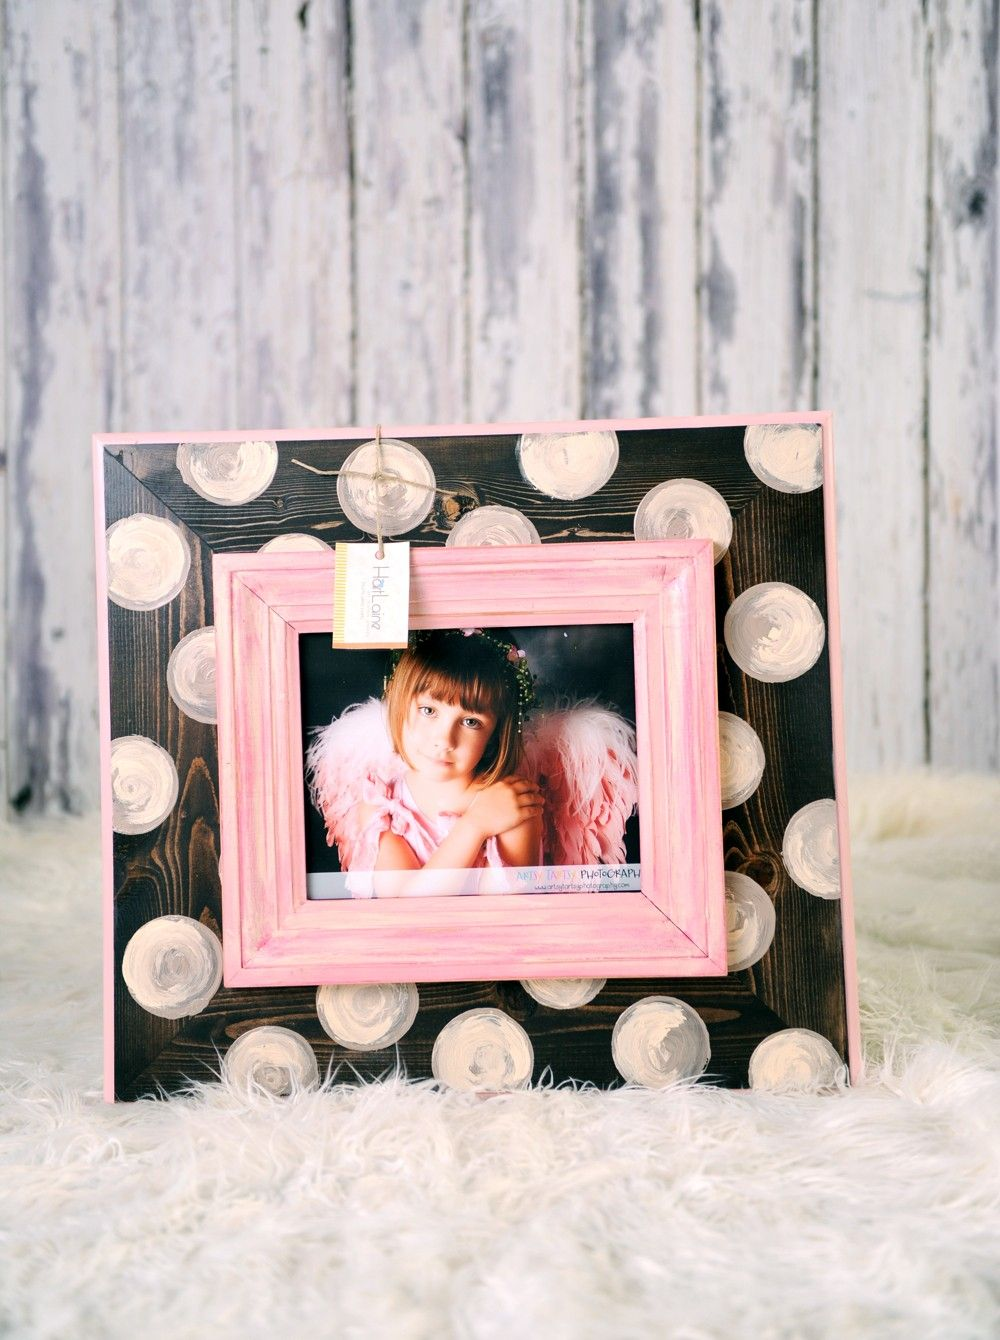 8x10 picture frame pink and polka dots 9900 via etsy 8x10 picture frame pink and polka dots 9900 via etsy jeuxipadfo Image collections